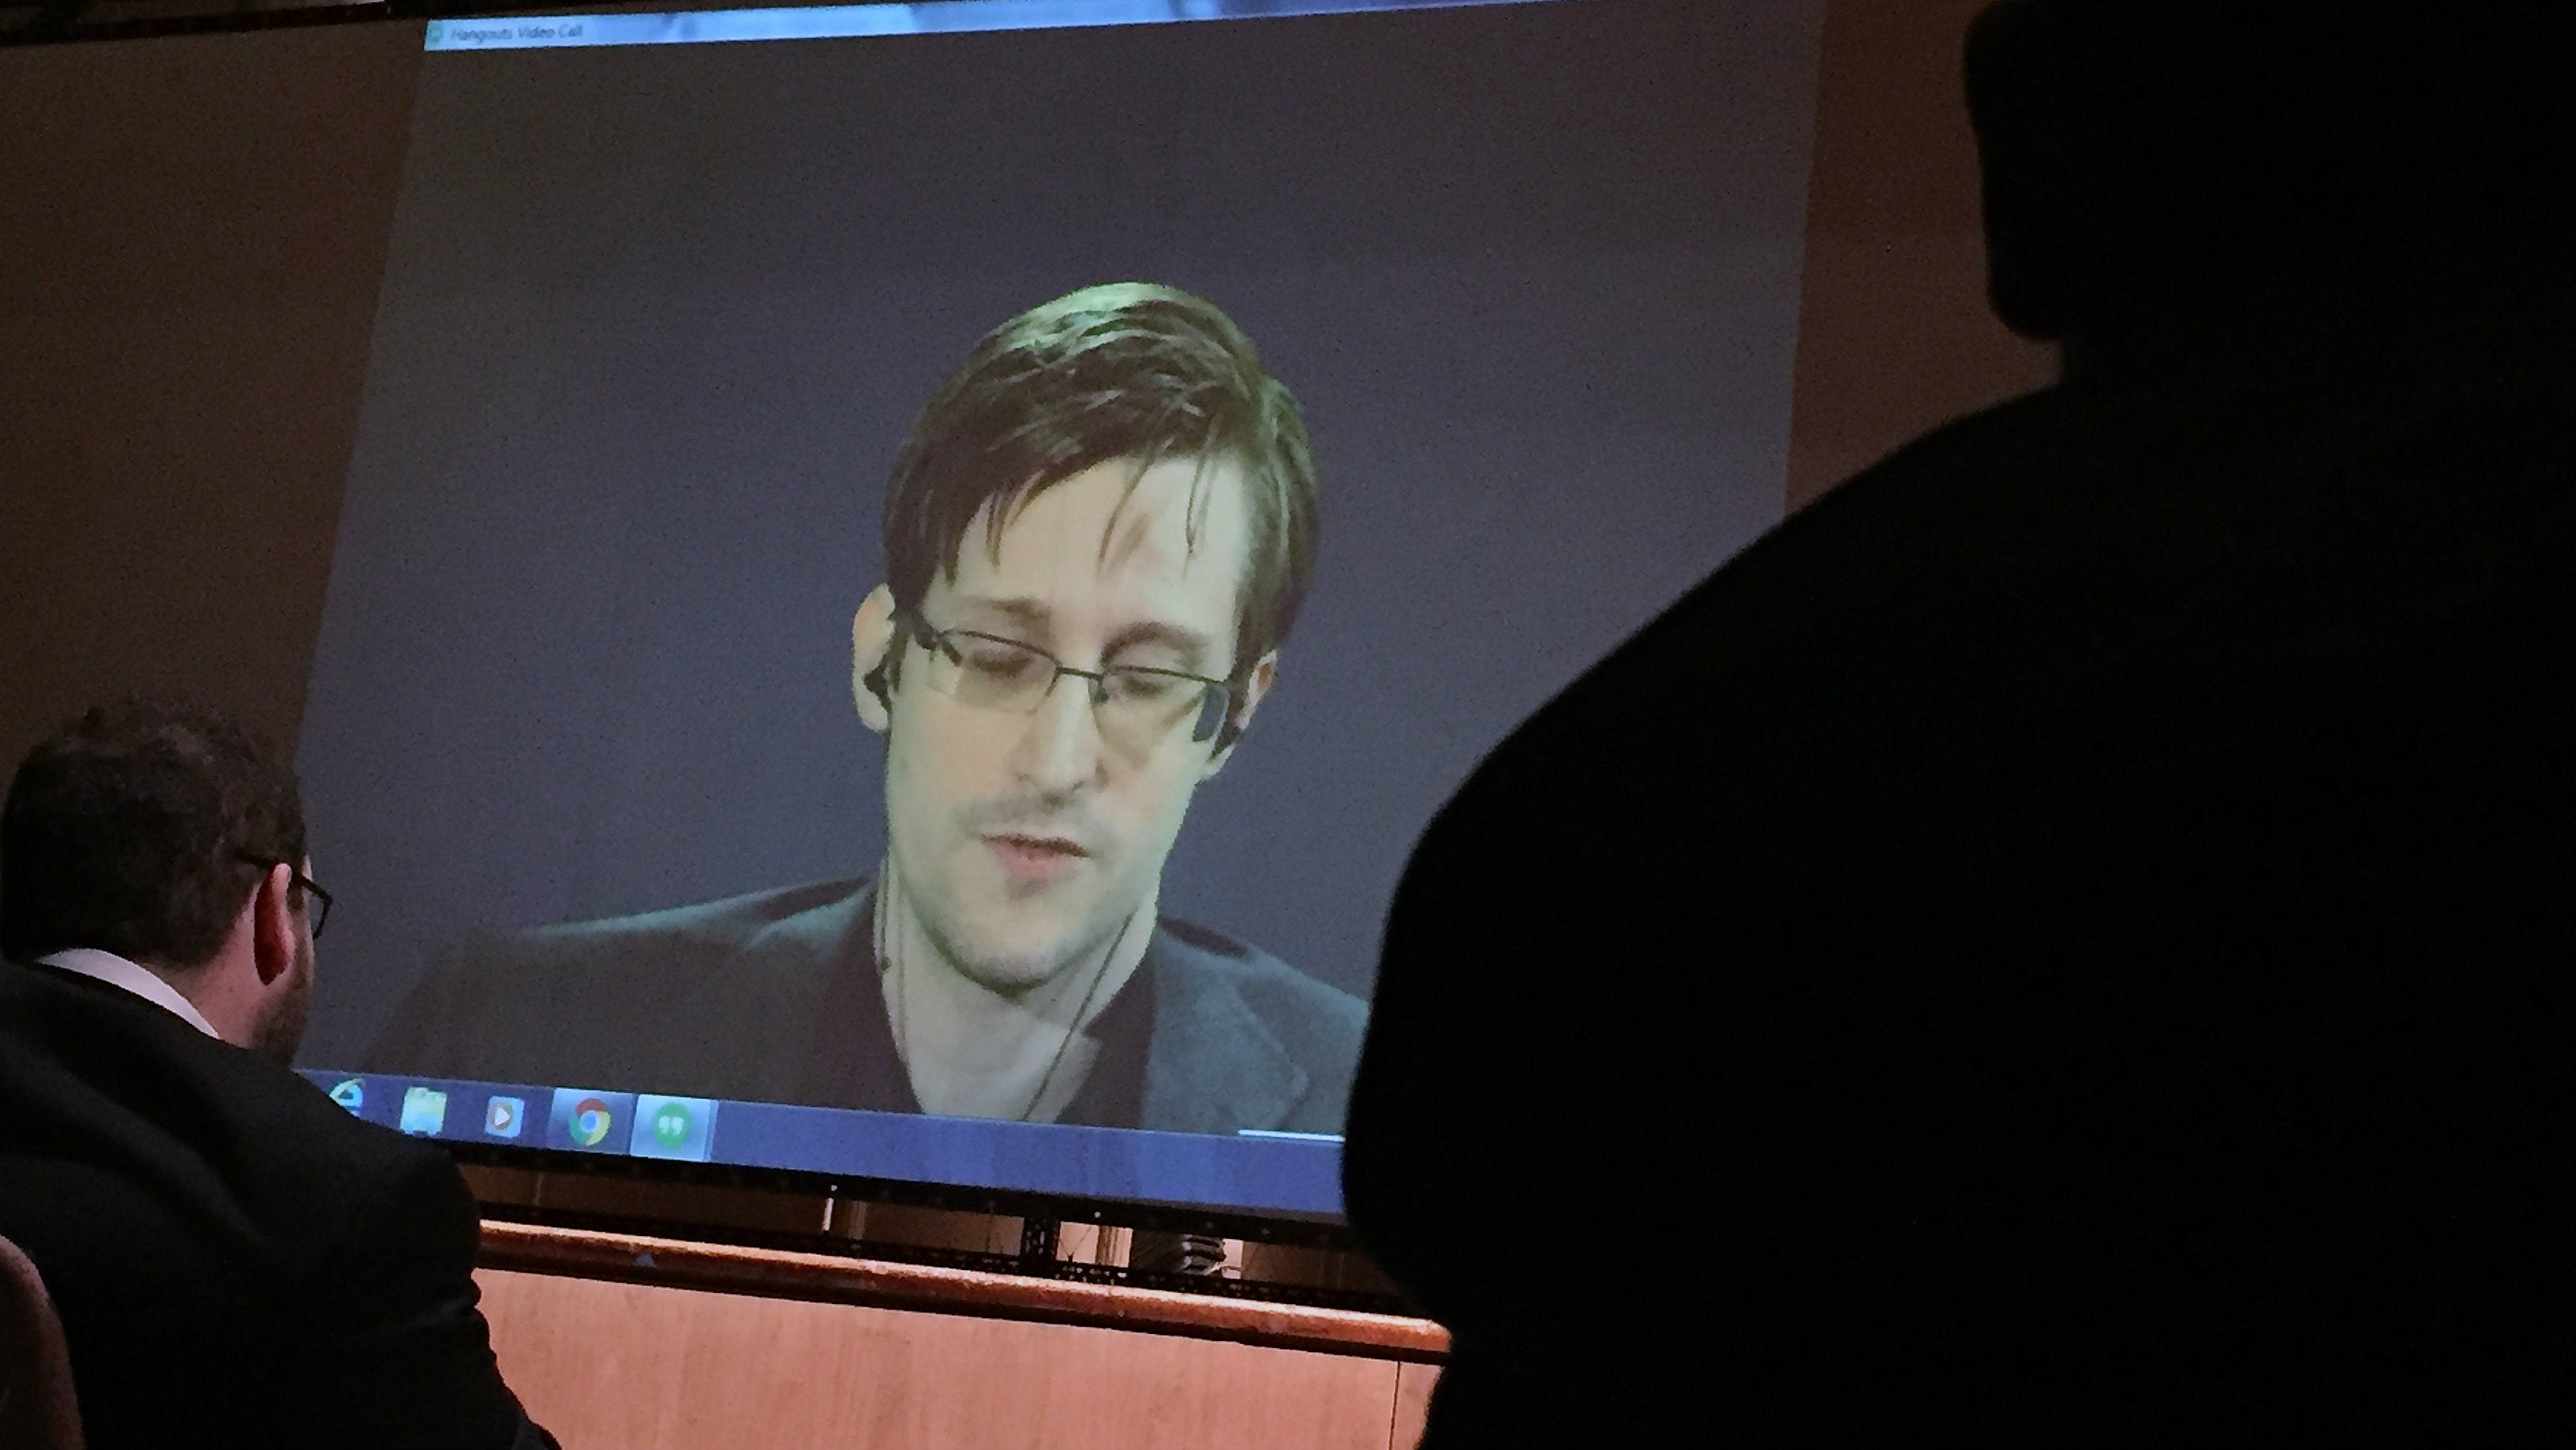 The New Snowden Movie Is The Best PR He'll Ever Get